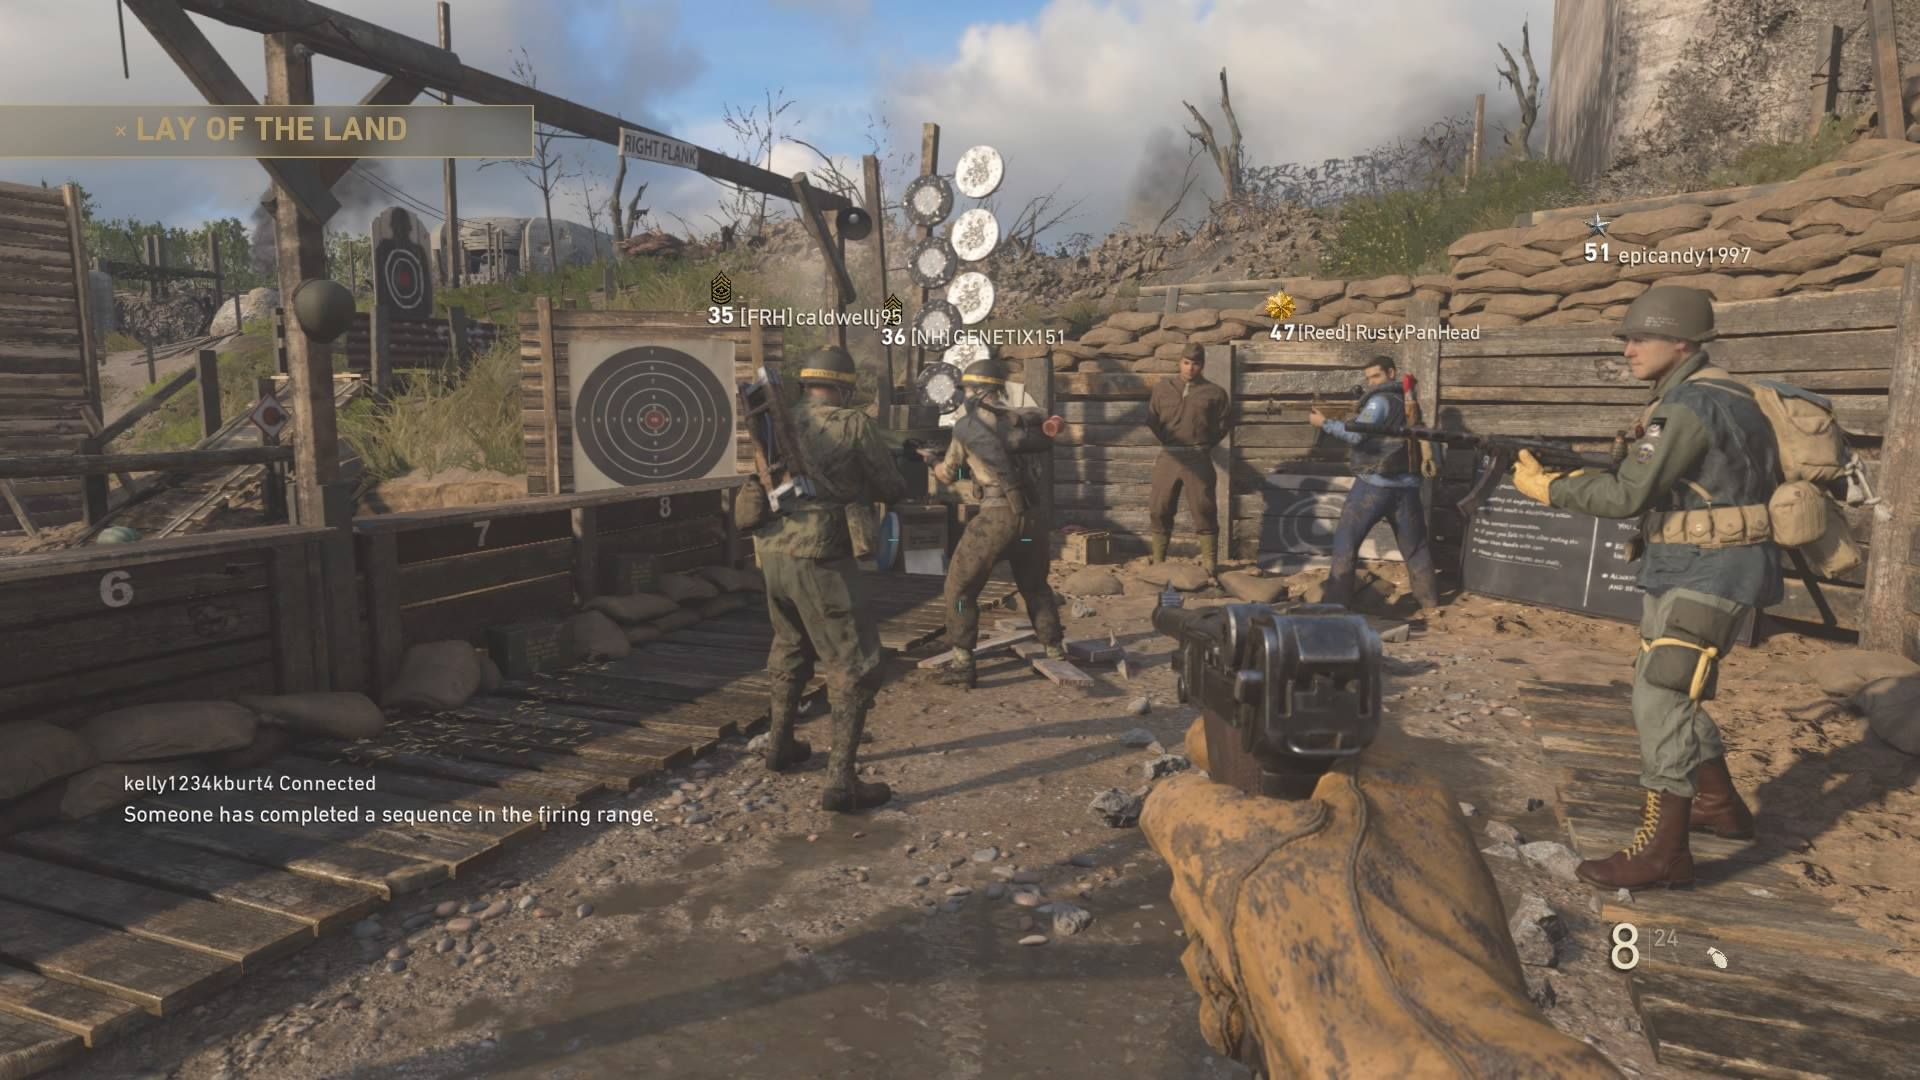 The Latest Call Of Duty Ww2 Patch Restores Headquarters To Full Operation And Introduces Other Tweaks Vg247